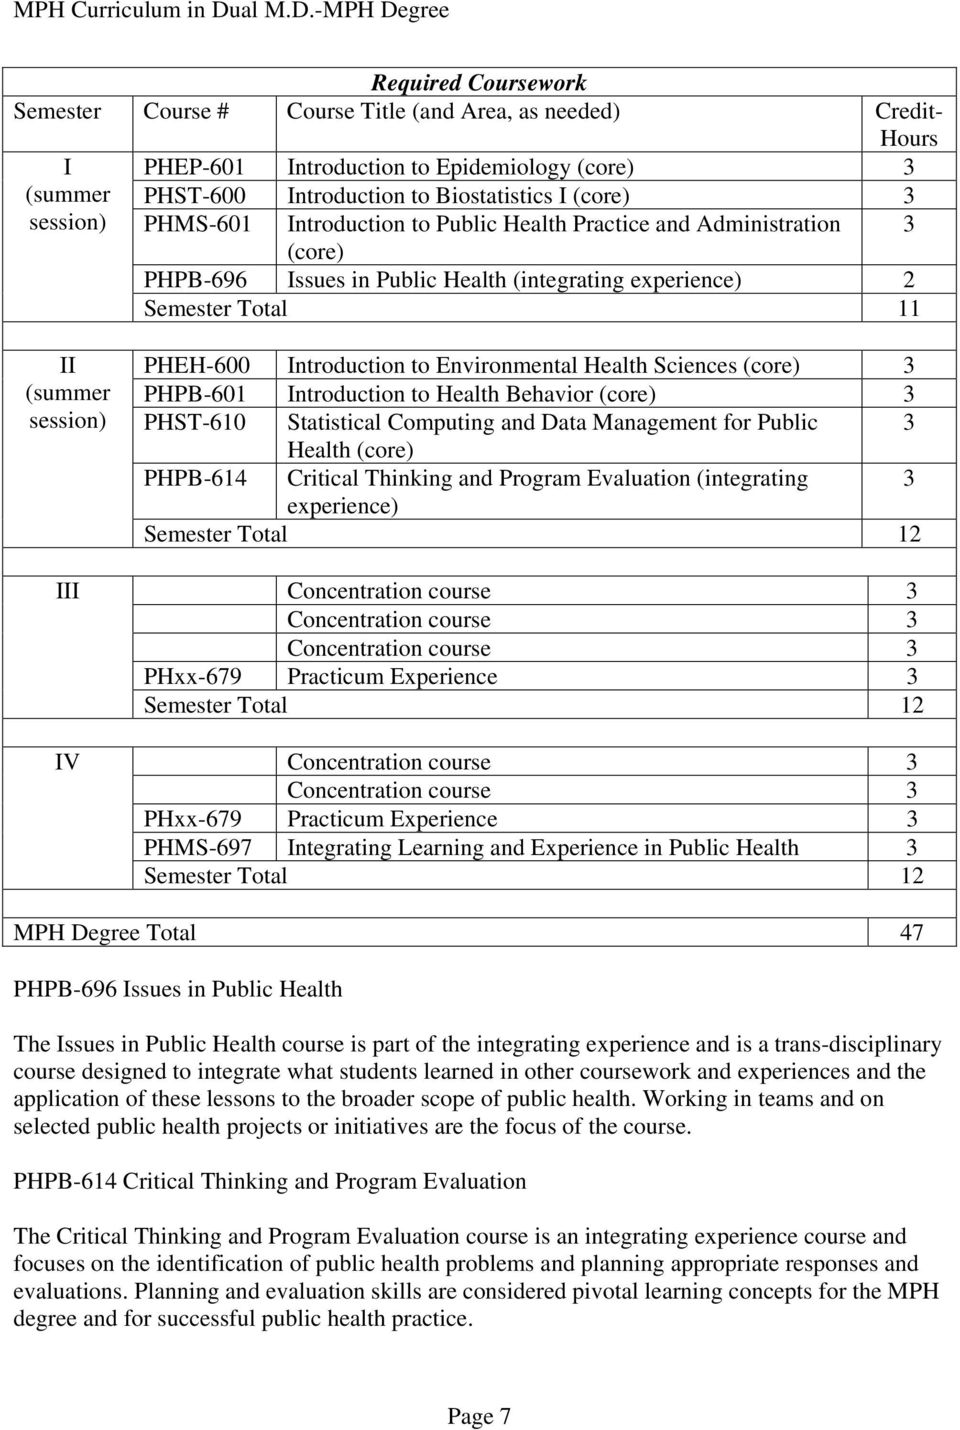 Introduction to Environmental Health Sciences (core) 3 PHPB-601 Introduction to Health Behavior (core) 3 PHST-610 Statistical Computing and Data Management for Public 3 Health (core) PHPB-614